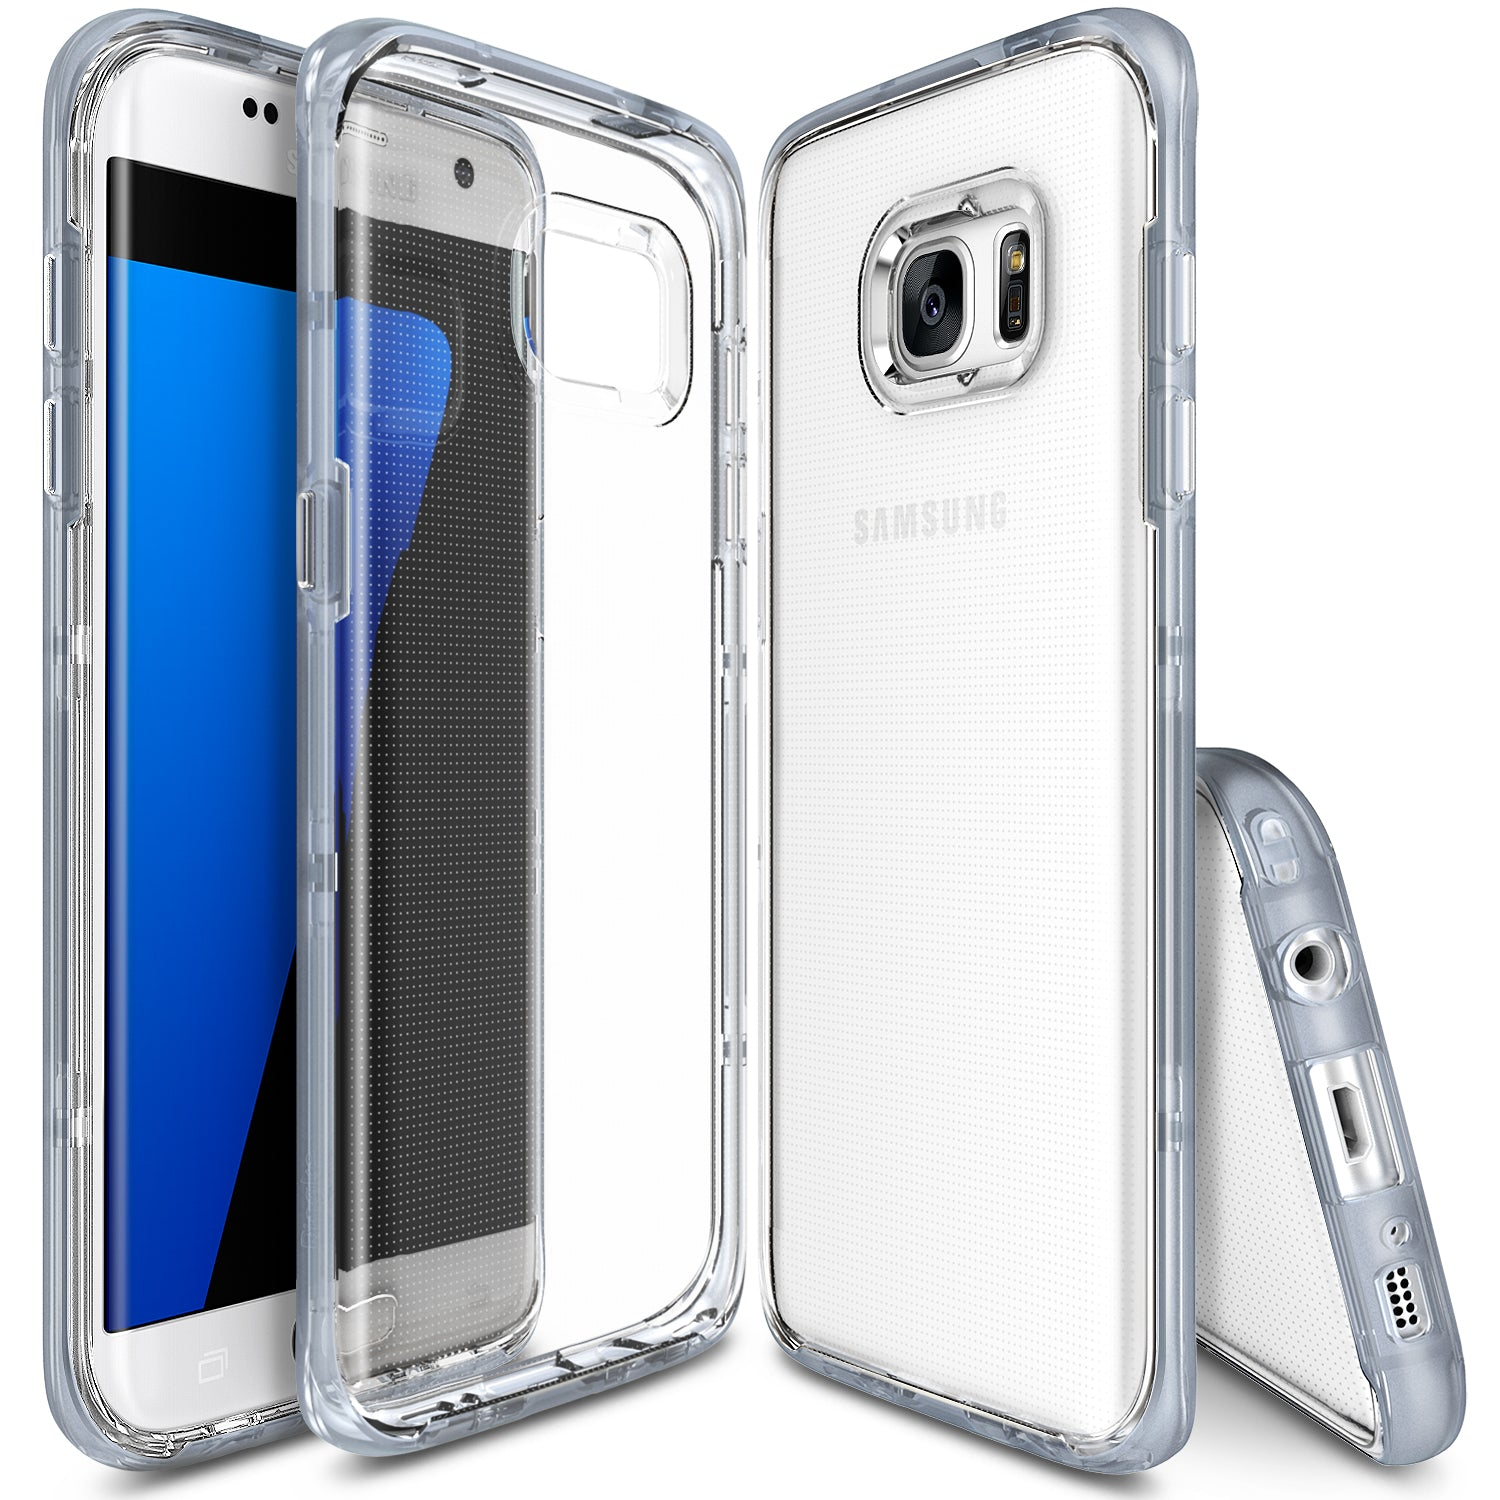 ringke frame clear back advanced bumper protection cover case for galaxy s7 edge frost gray